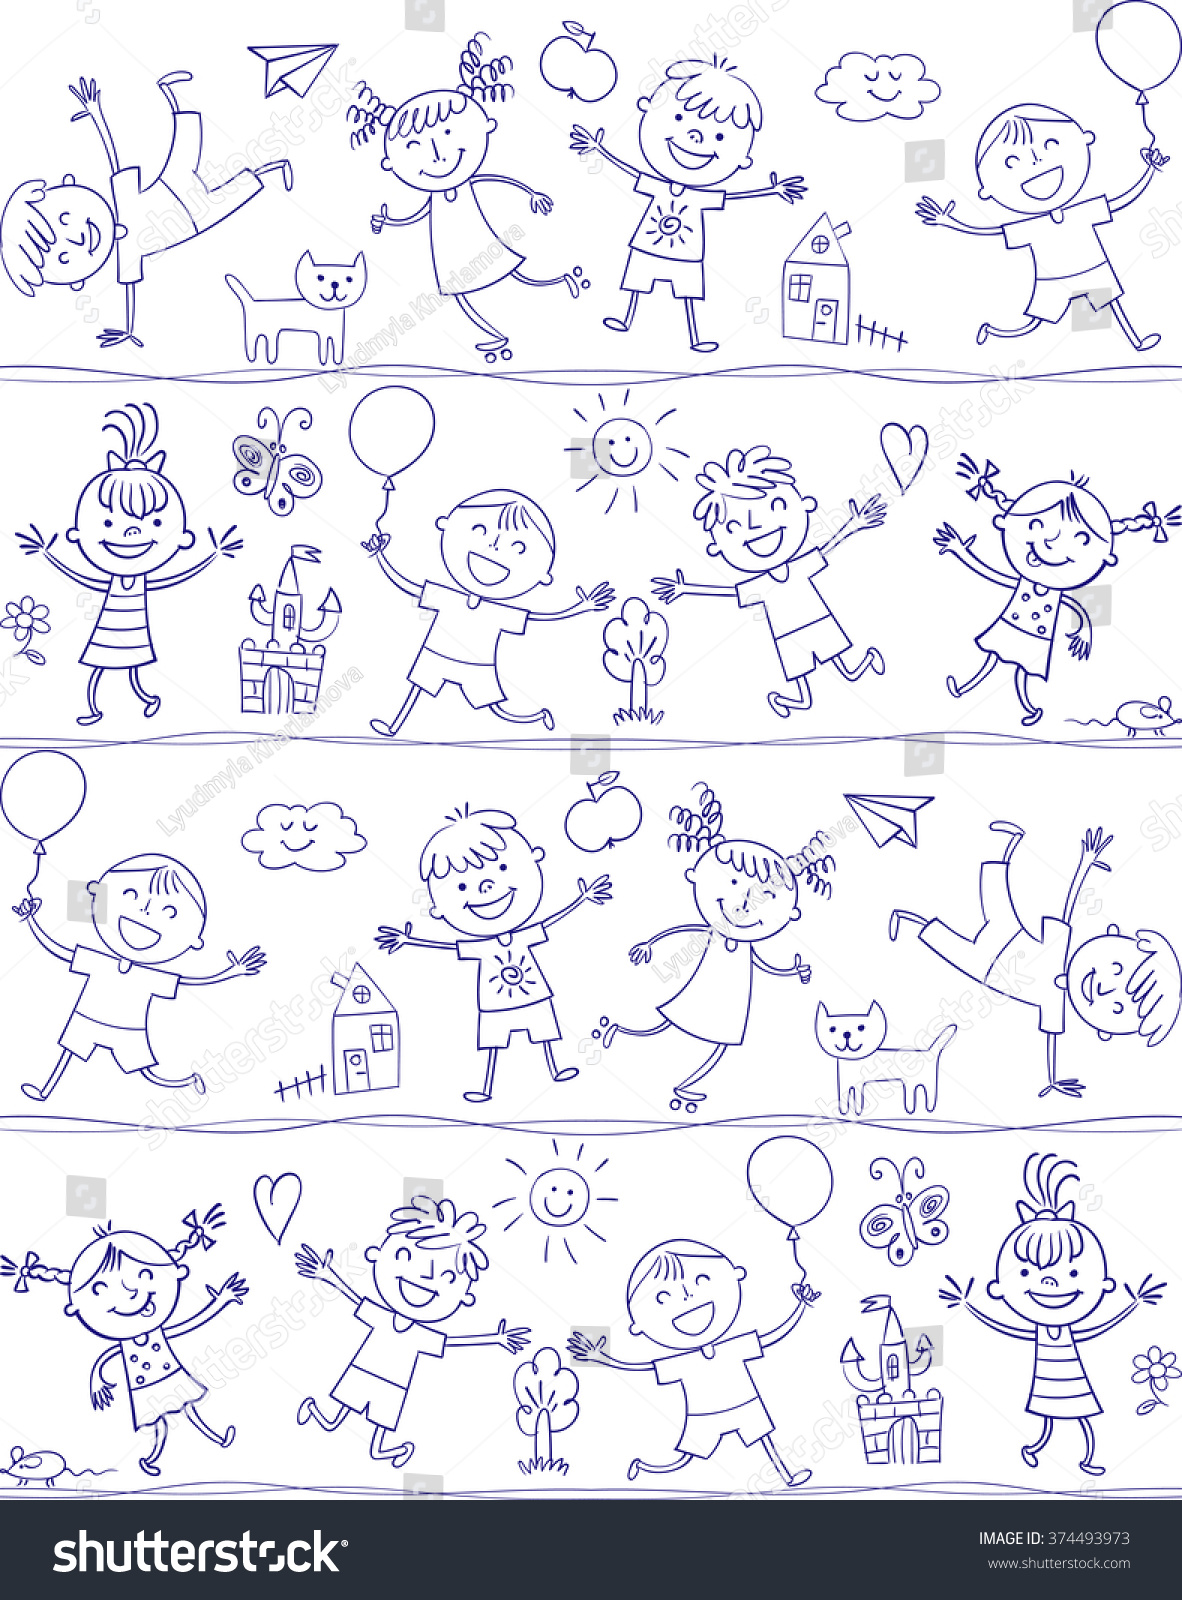 happy kid cartoon doodle in the style of childrens drawings seamless pattern freehand